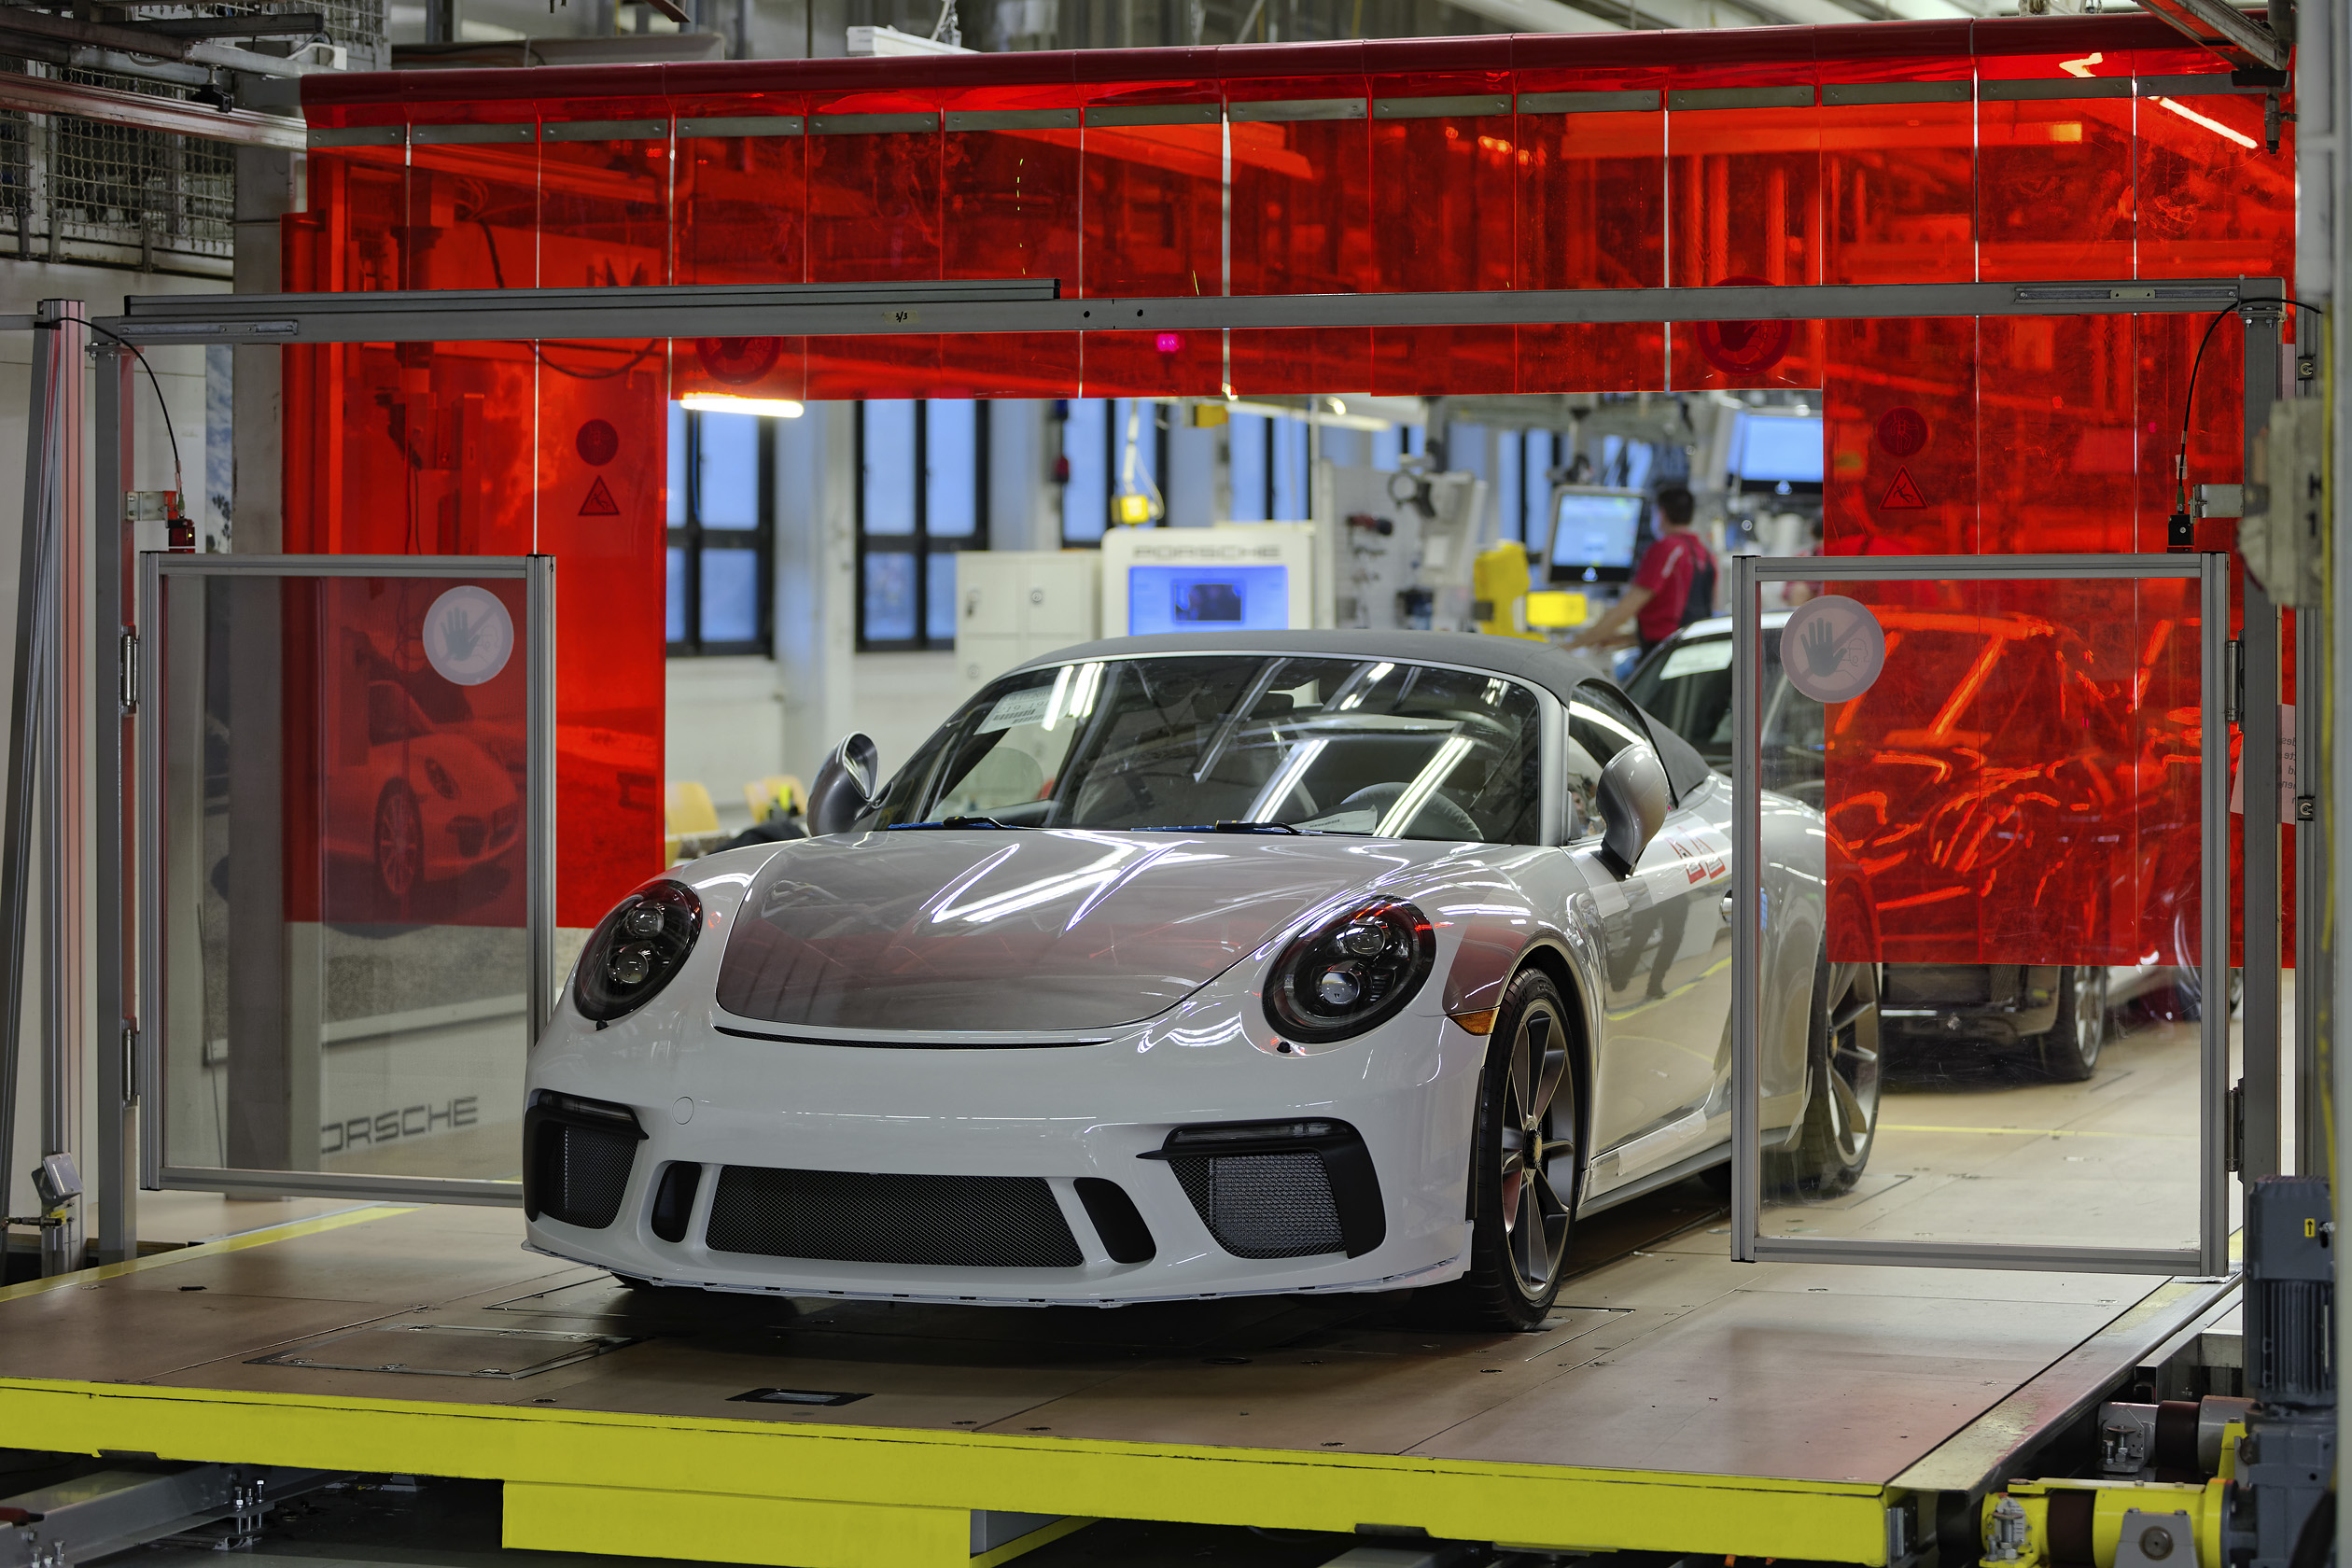 191222 Last Porsche 911 of the 991 generation comes off the production line [3]